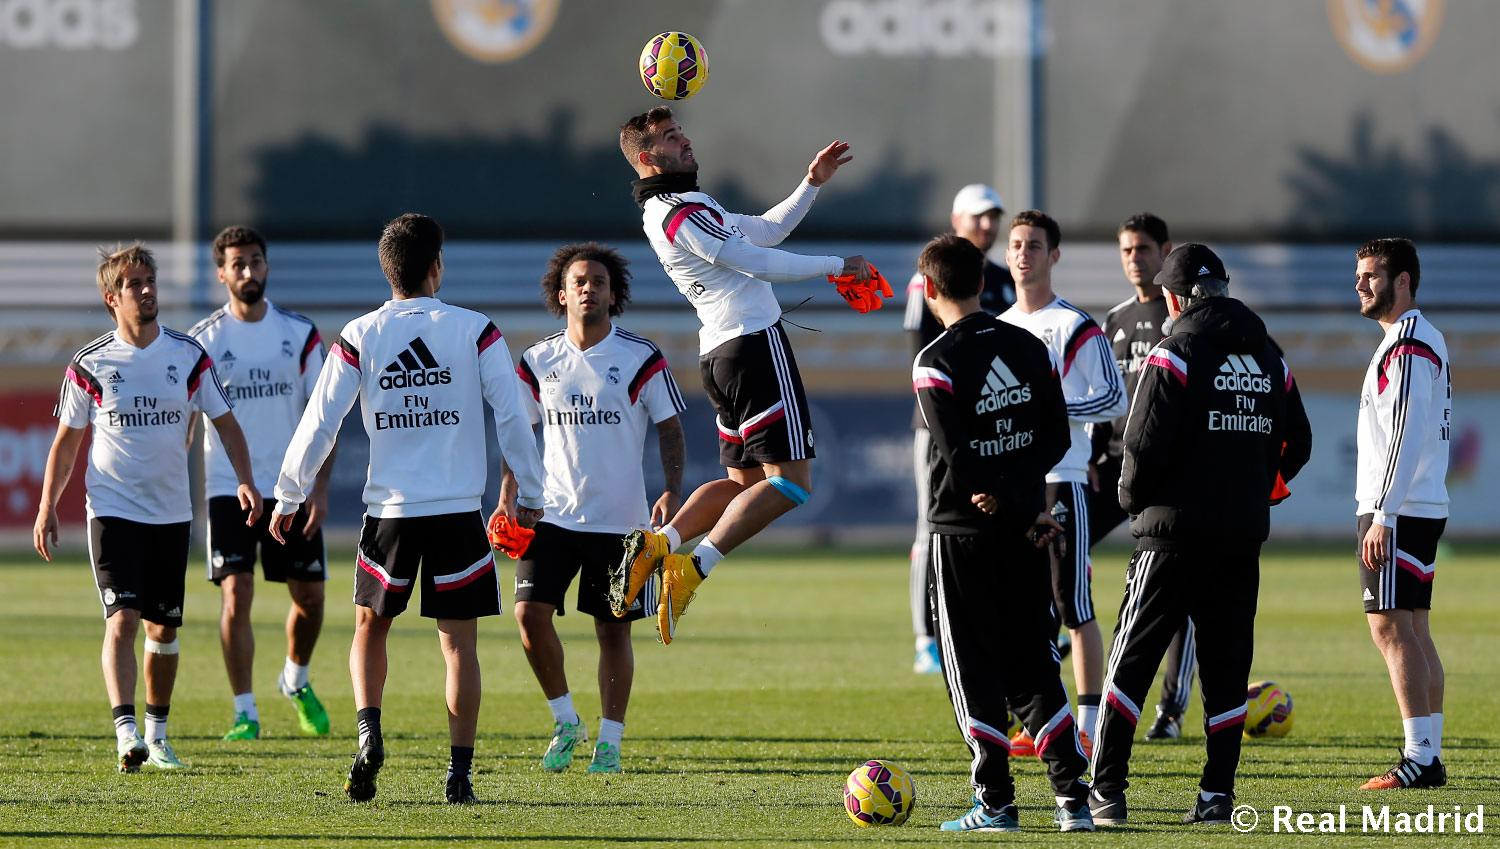 Real Madrid - Entrenamiento del Real Madrid - 19-11-2014